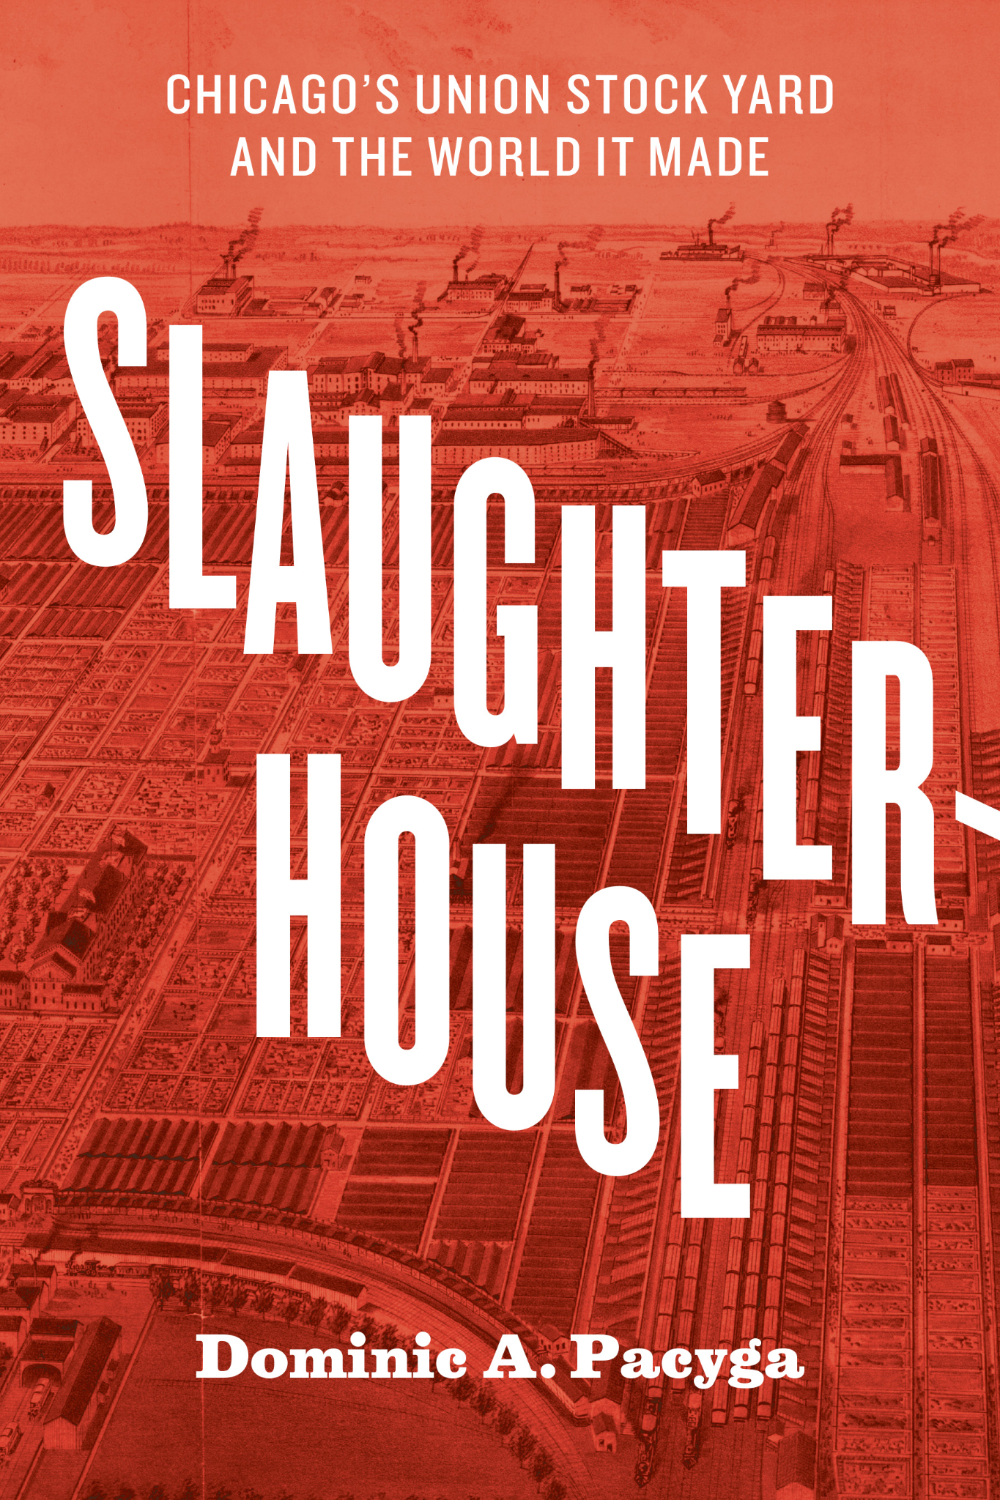 slaughterhouse hires.jpg